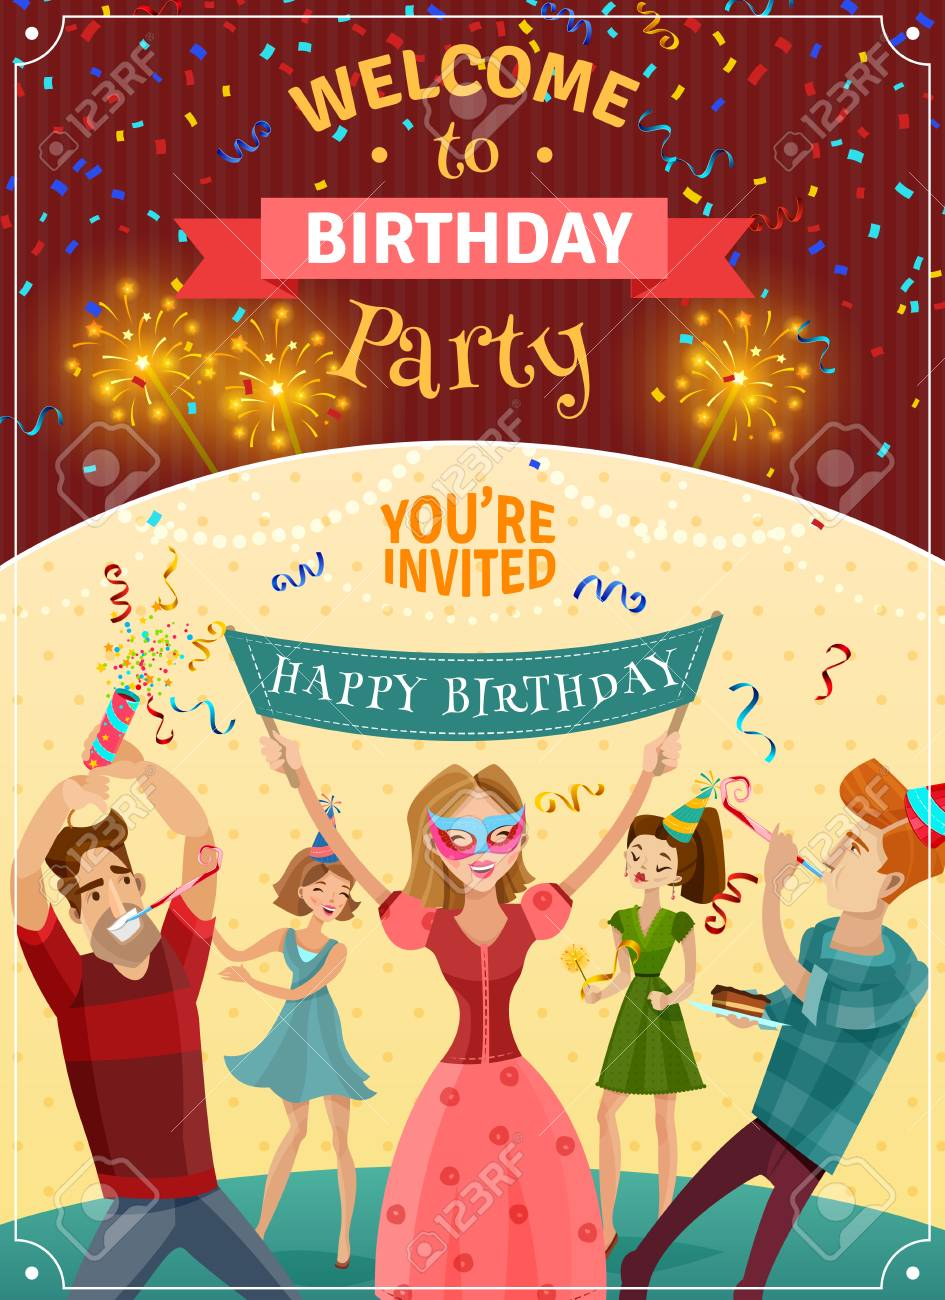 birthday party announcement invitation card or poster with sparklers